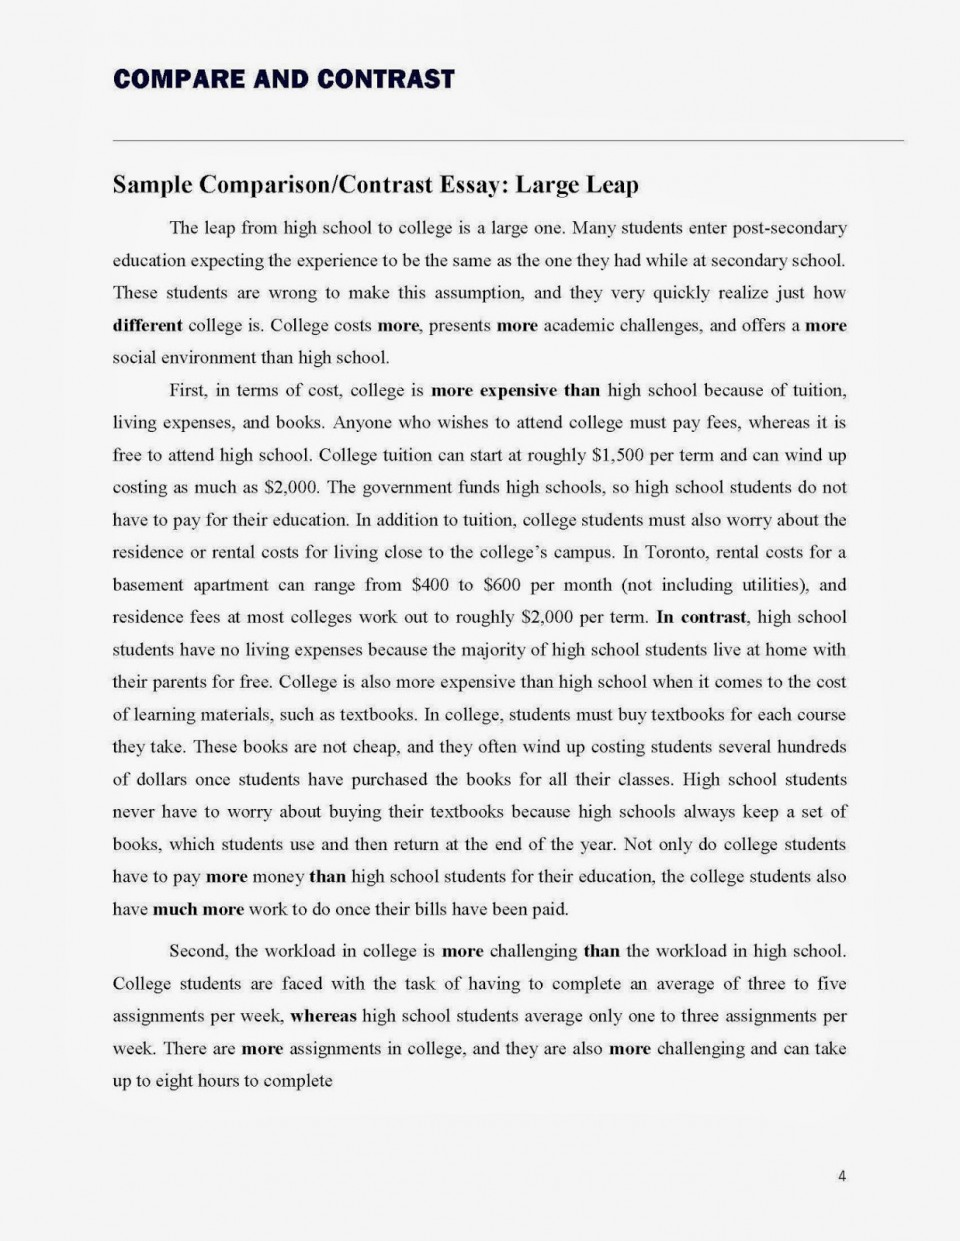 011 Compare And Contrast Essay Compareandcontrastessay Page 4h125 Frightening Introduction Paragraph Topics About Love Outline Example 960